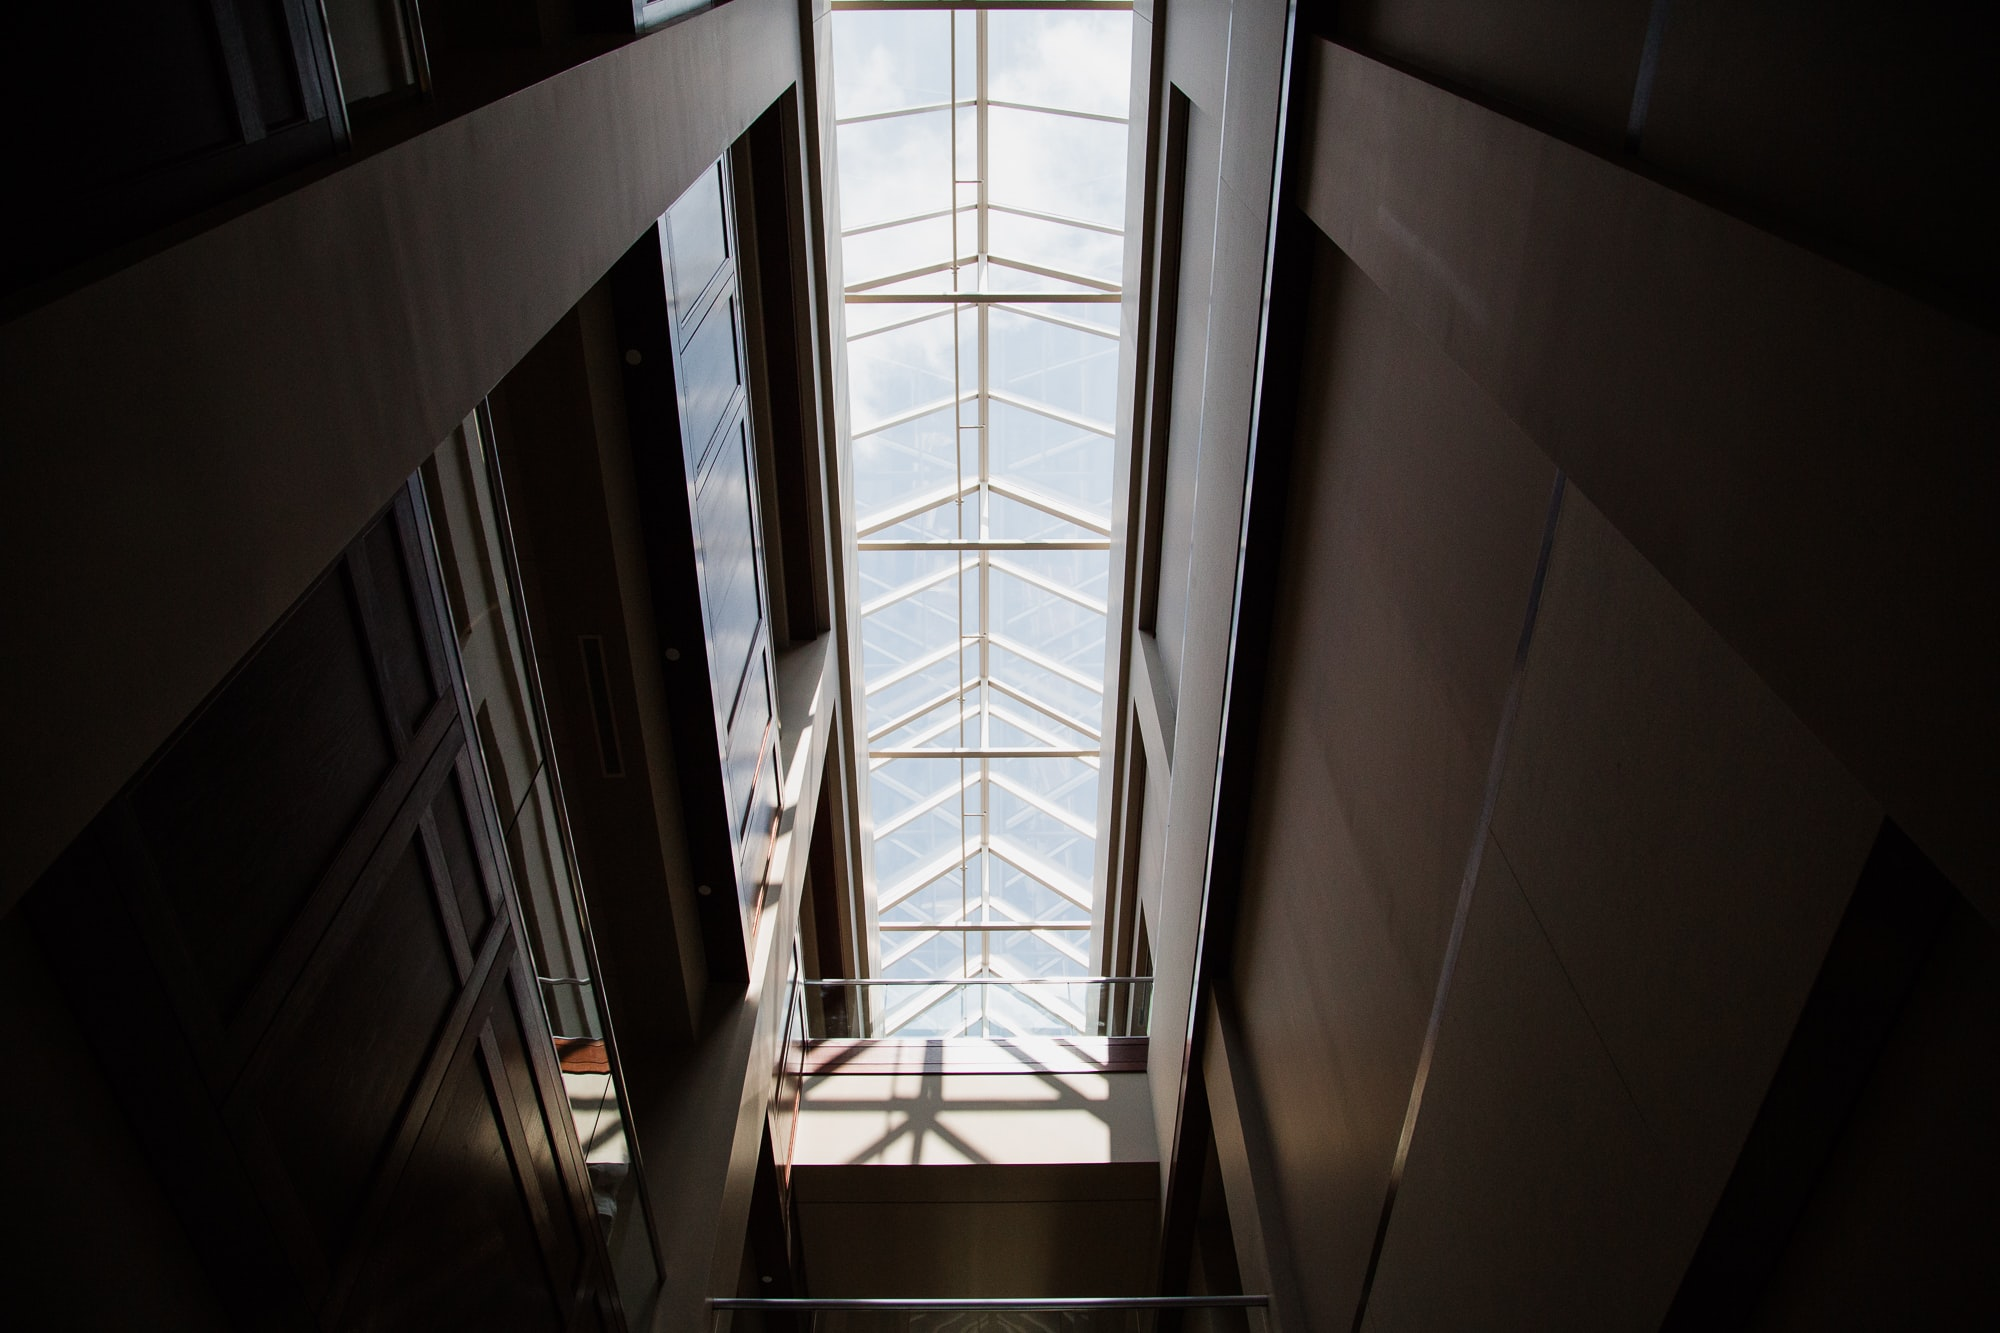 Looking up from a dark room at a building's roof with a long skylight with sunshine